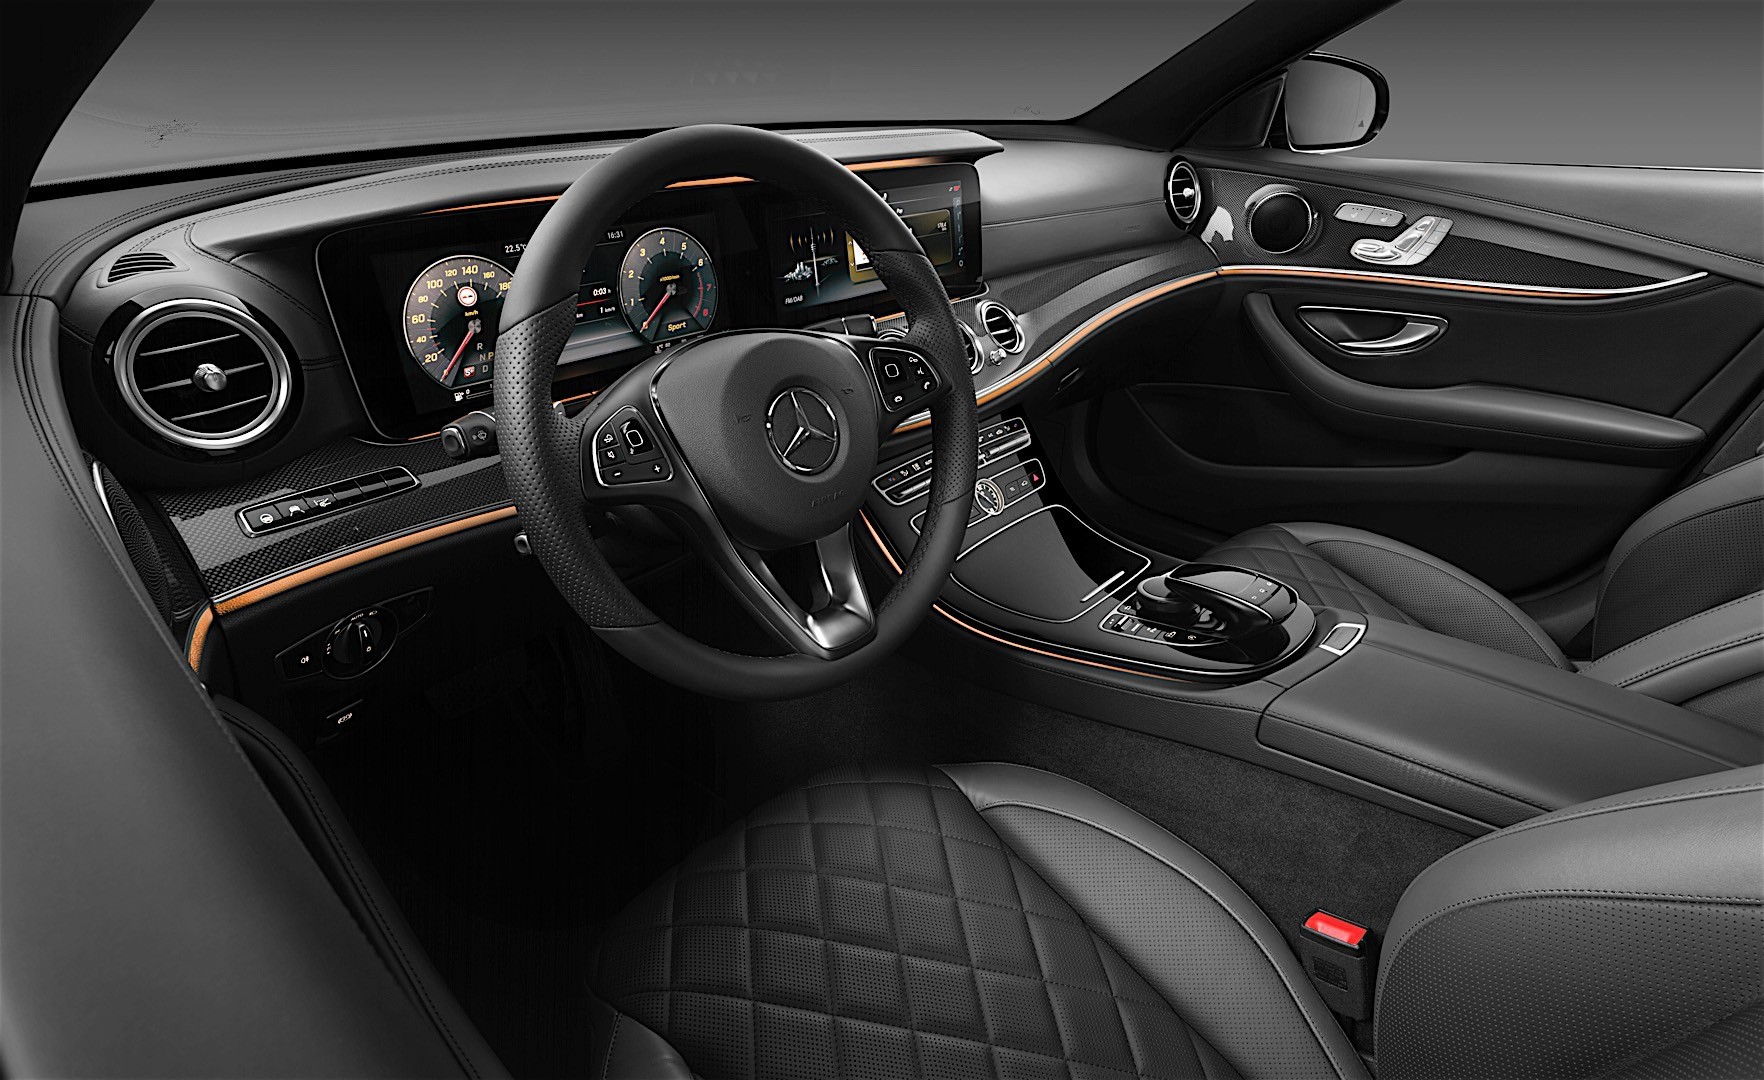 2017 mercedes benz e class interior officially unveiled for Interieur e klasse 2017